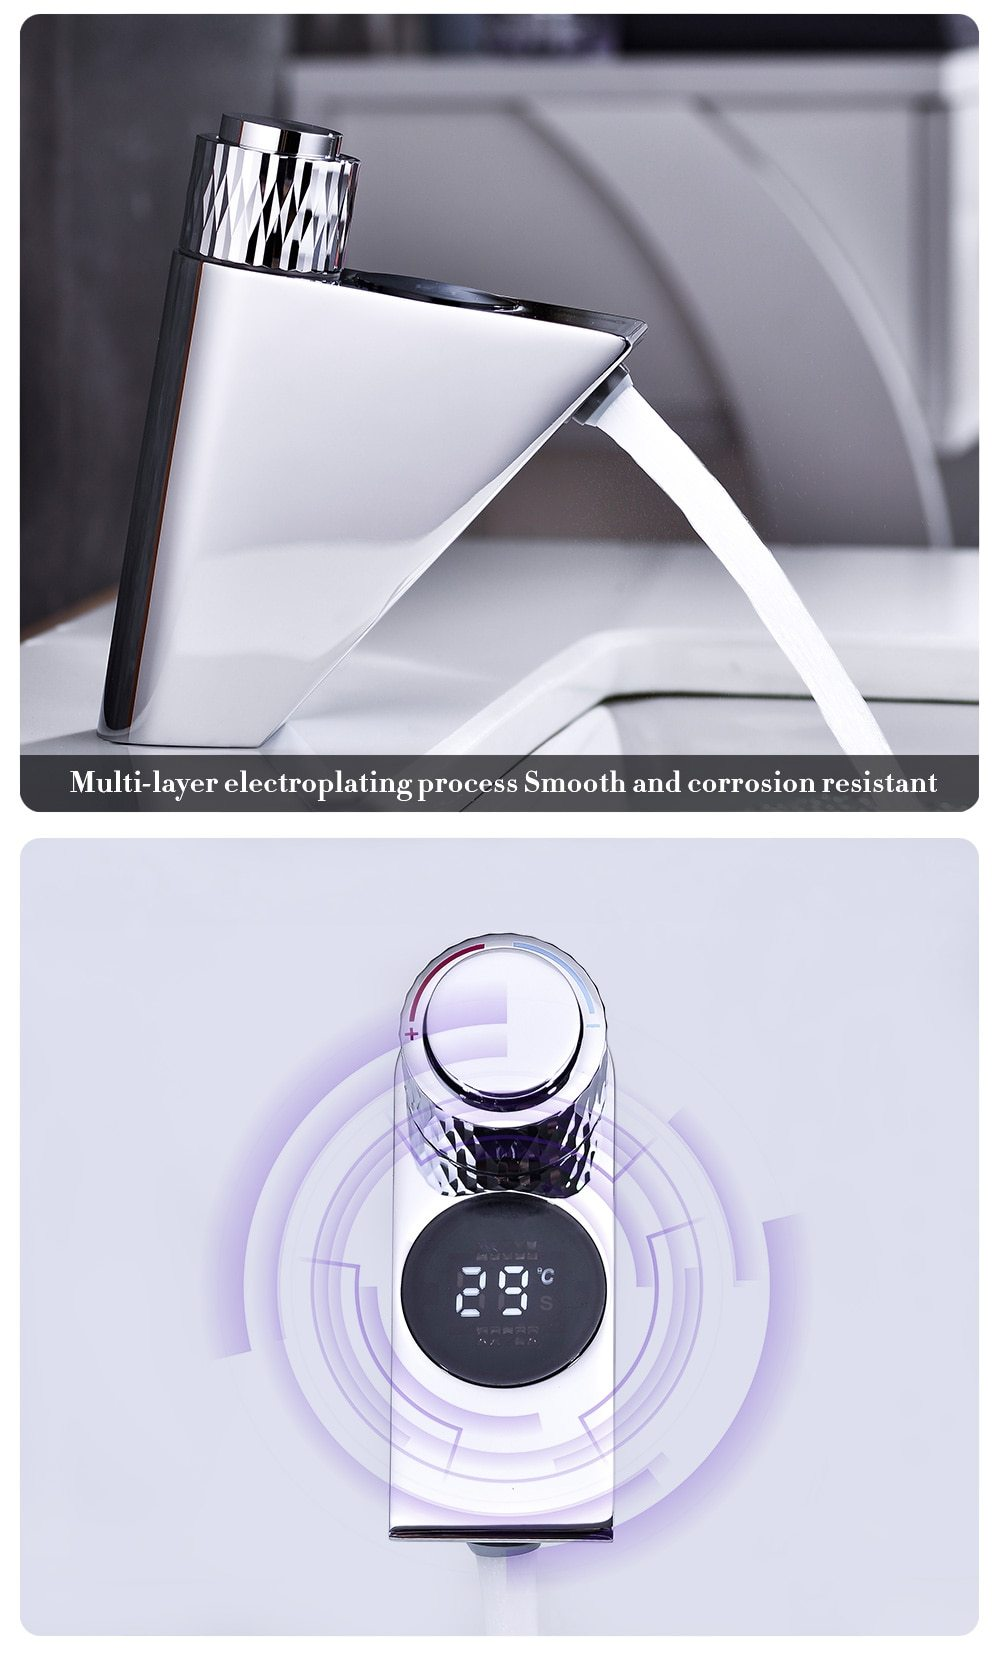 New Style Temperature Display Hot And Cold mixer Faucet